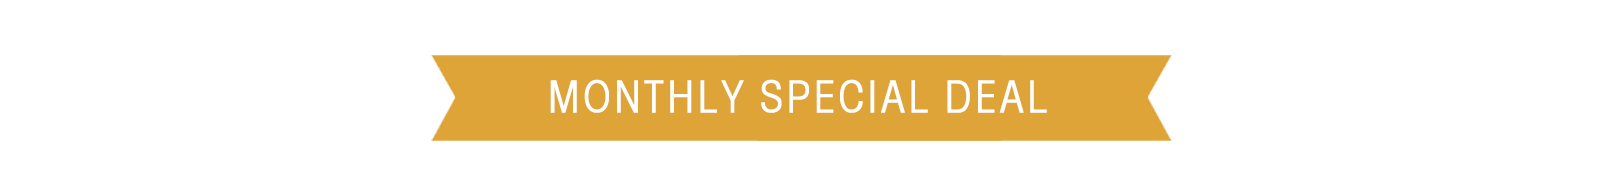 Innisfree Monthly Special Deal Title